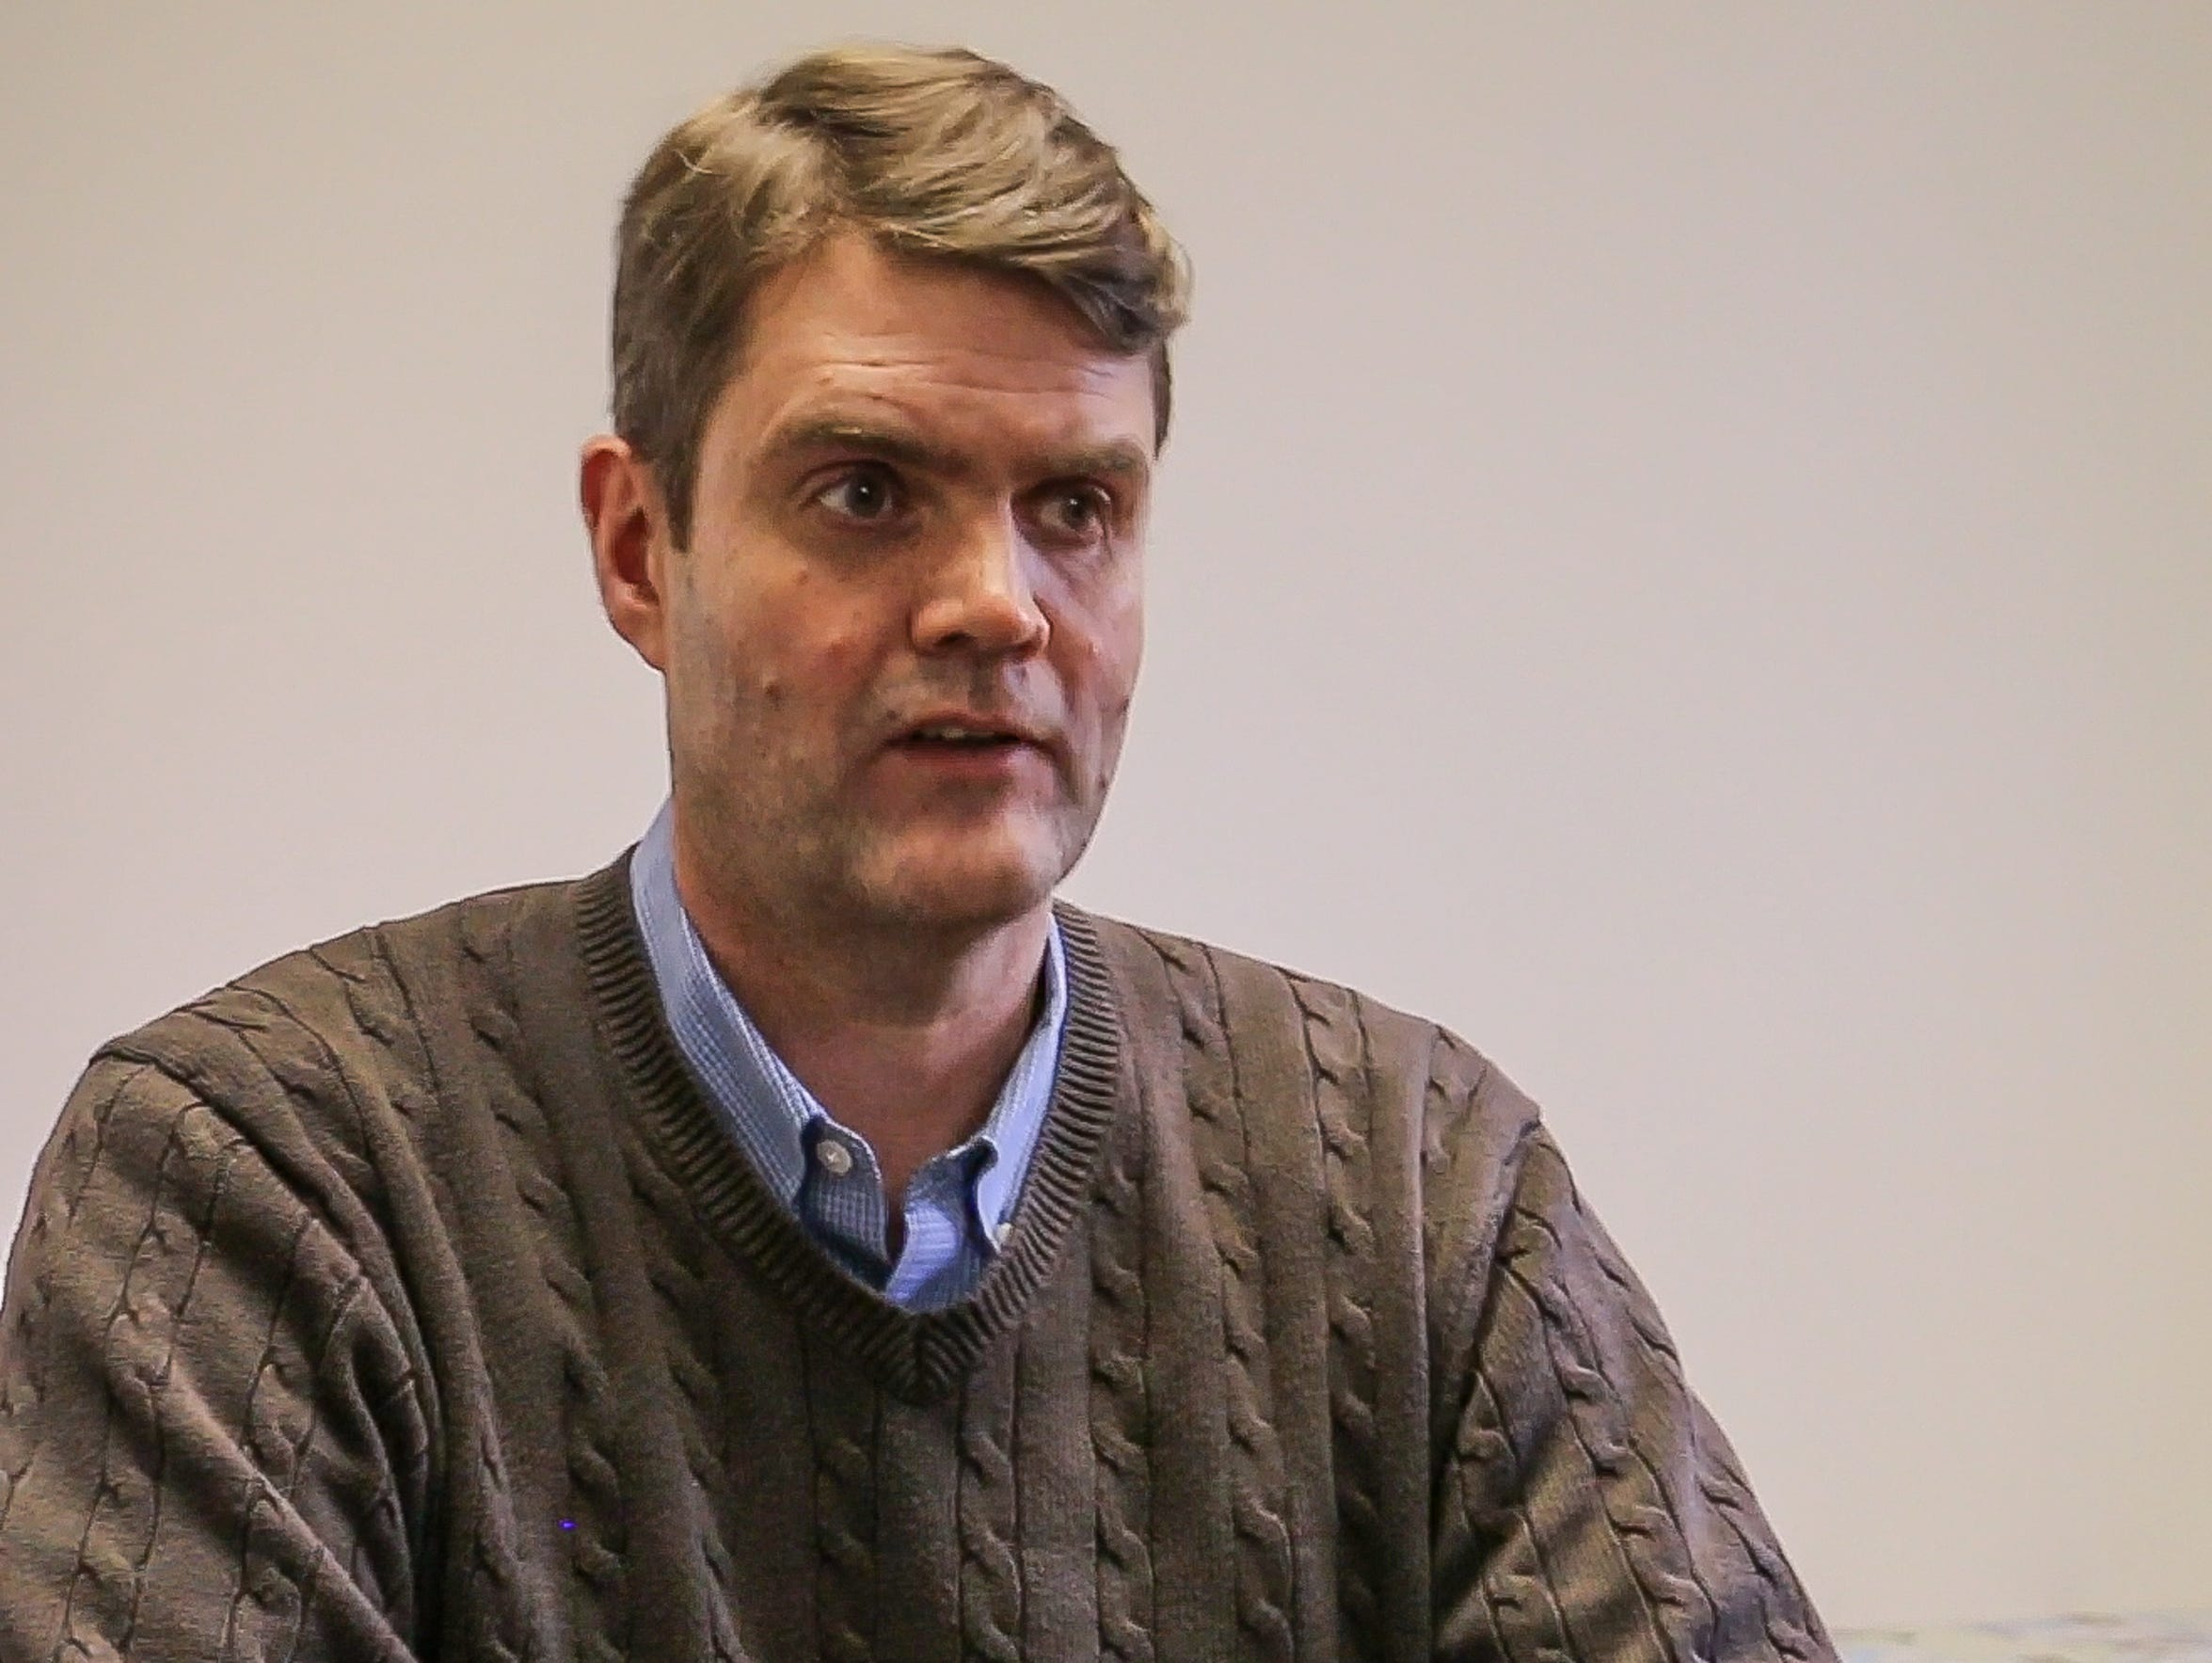 Peter Qualliotine, co-founder and director of menÕs